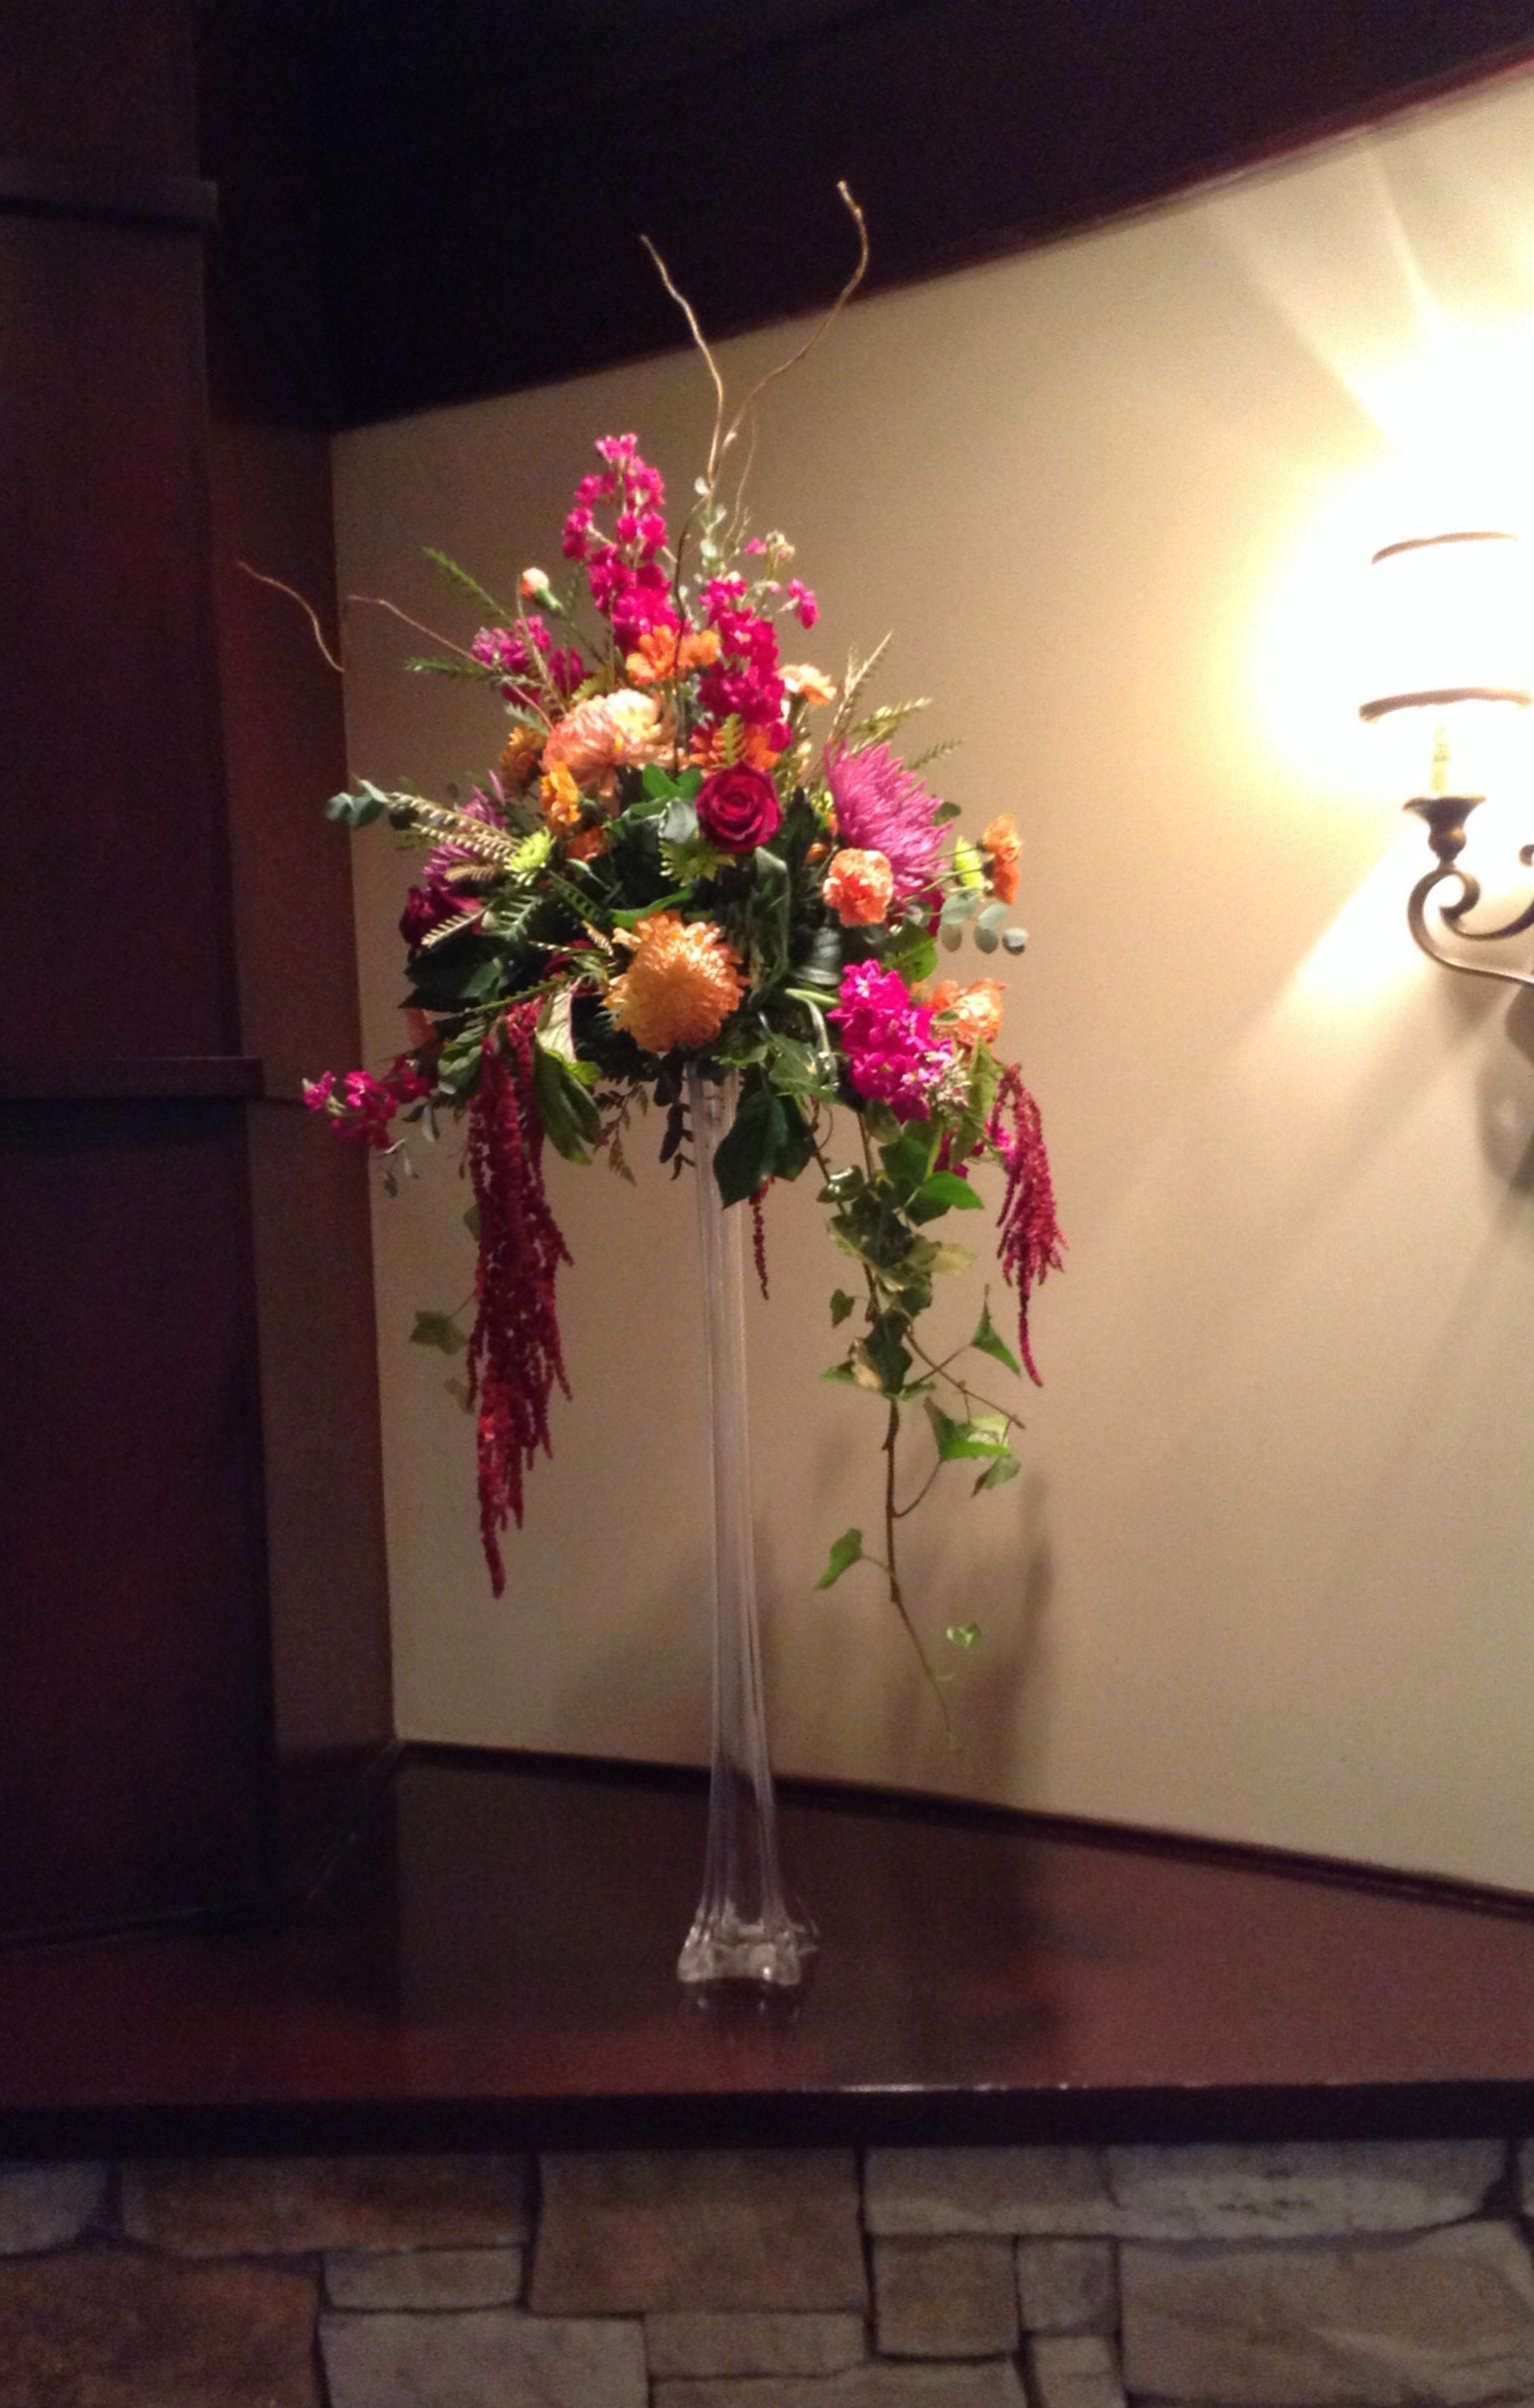 Reception flowers in tall tower vase by